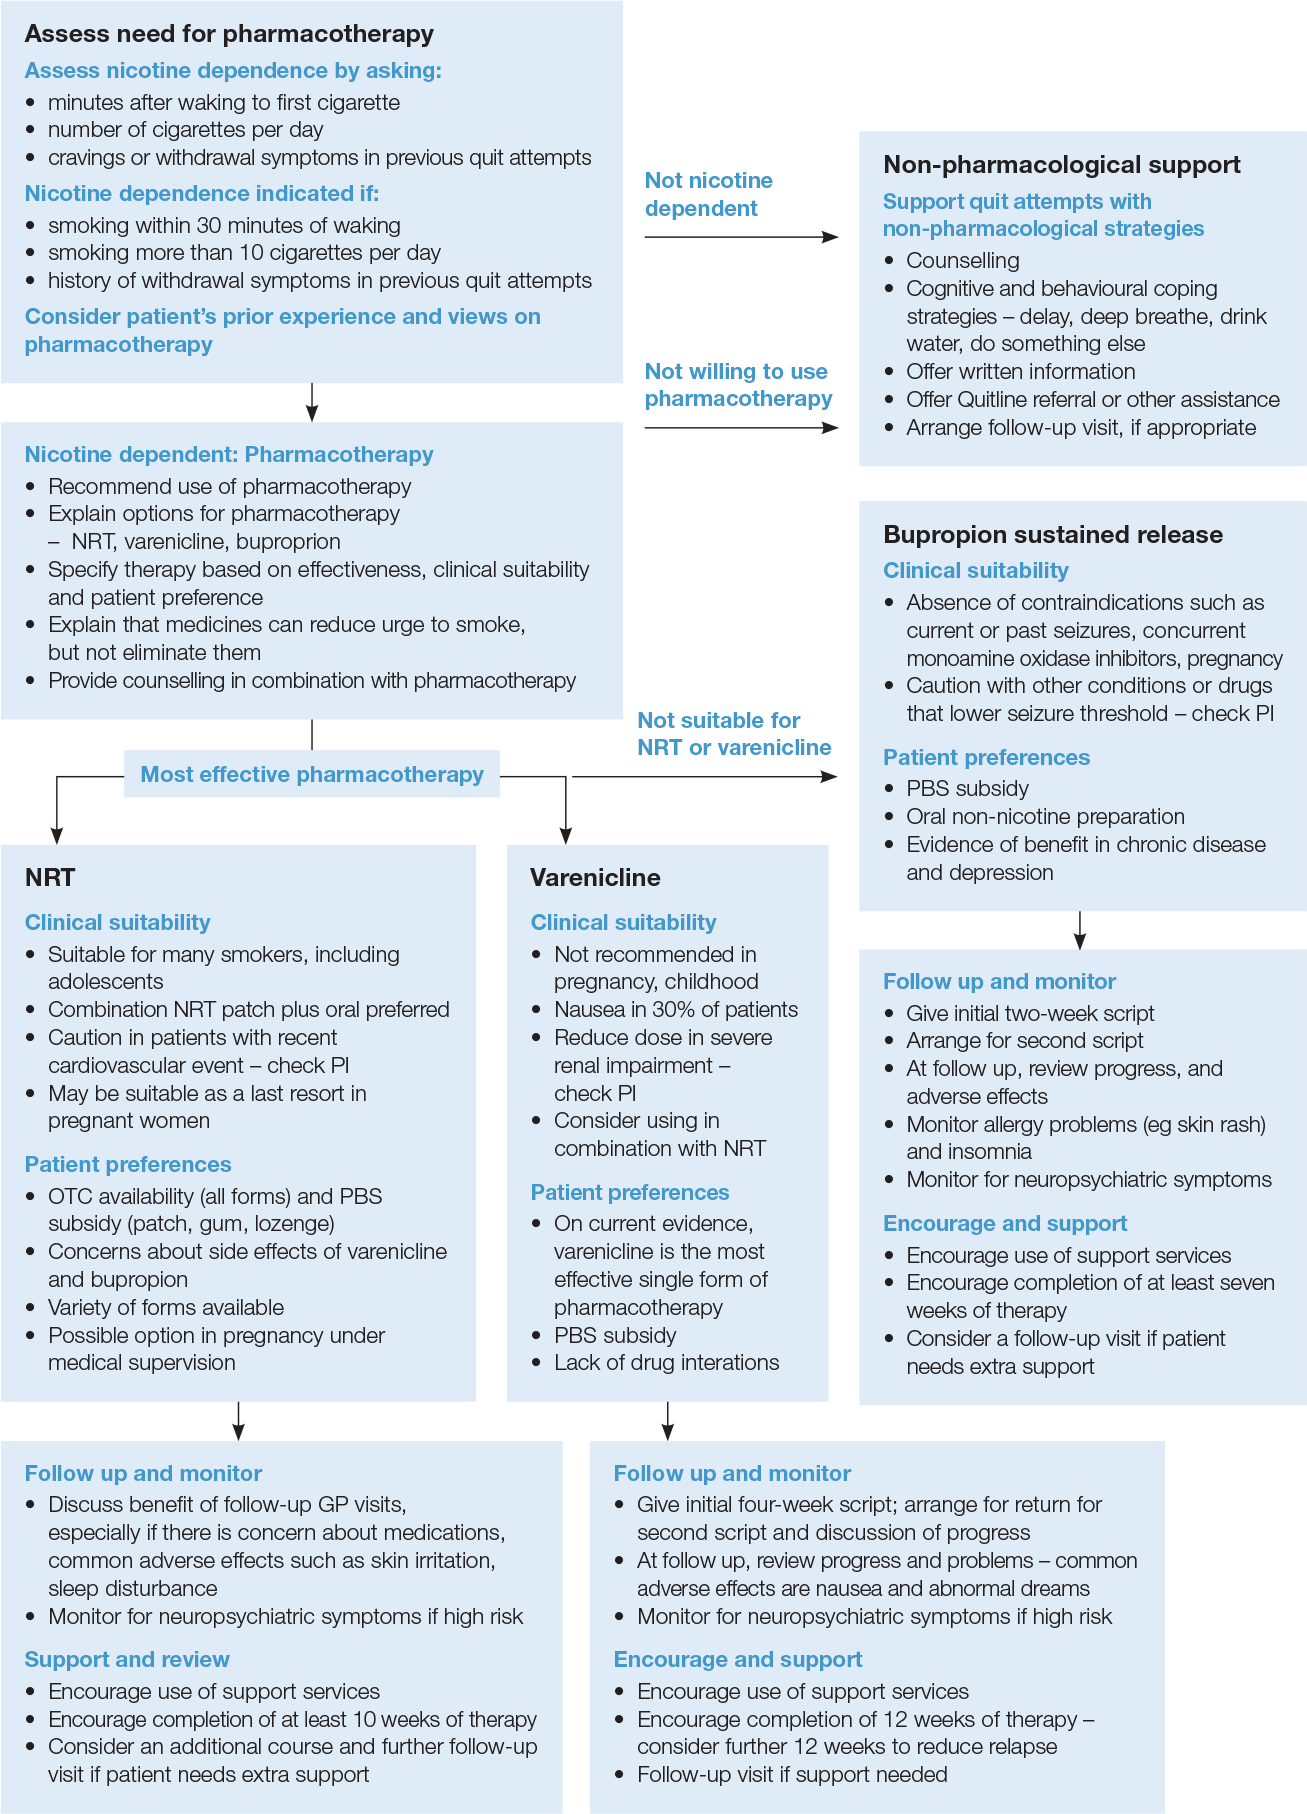 Pharmacotherapy treatment algorithm